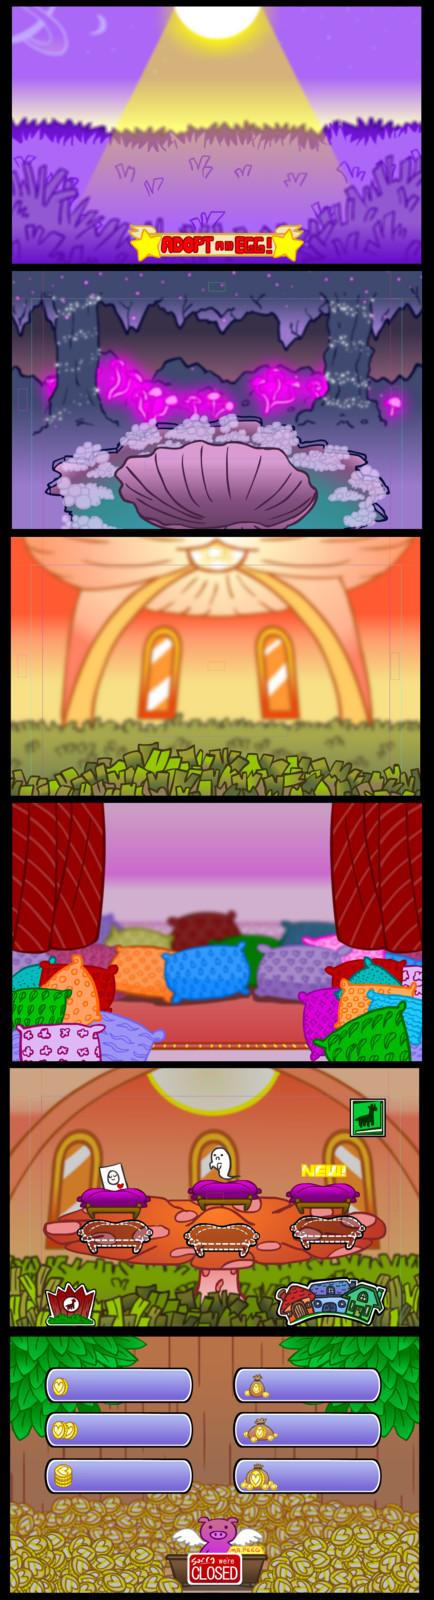 Initial backgrounds for the game. I didn't have a solid theme or palette to tie them all together and feel that I could have done better. Great try though!